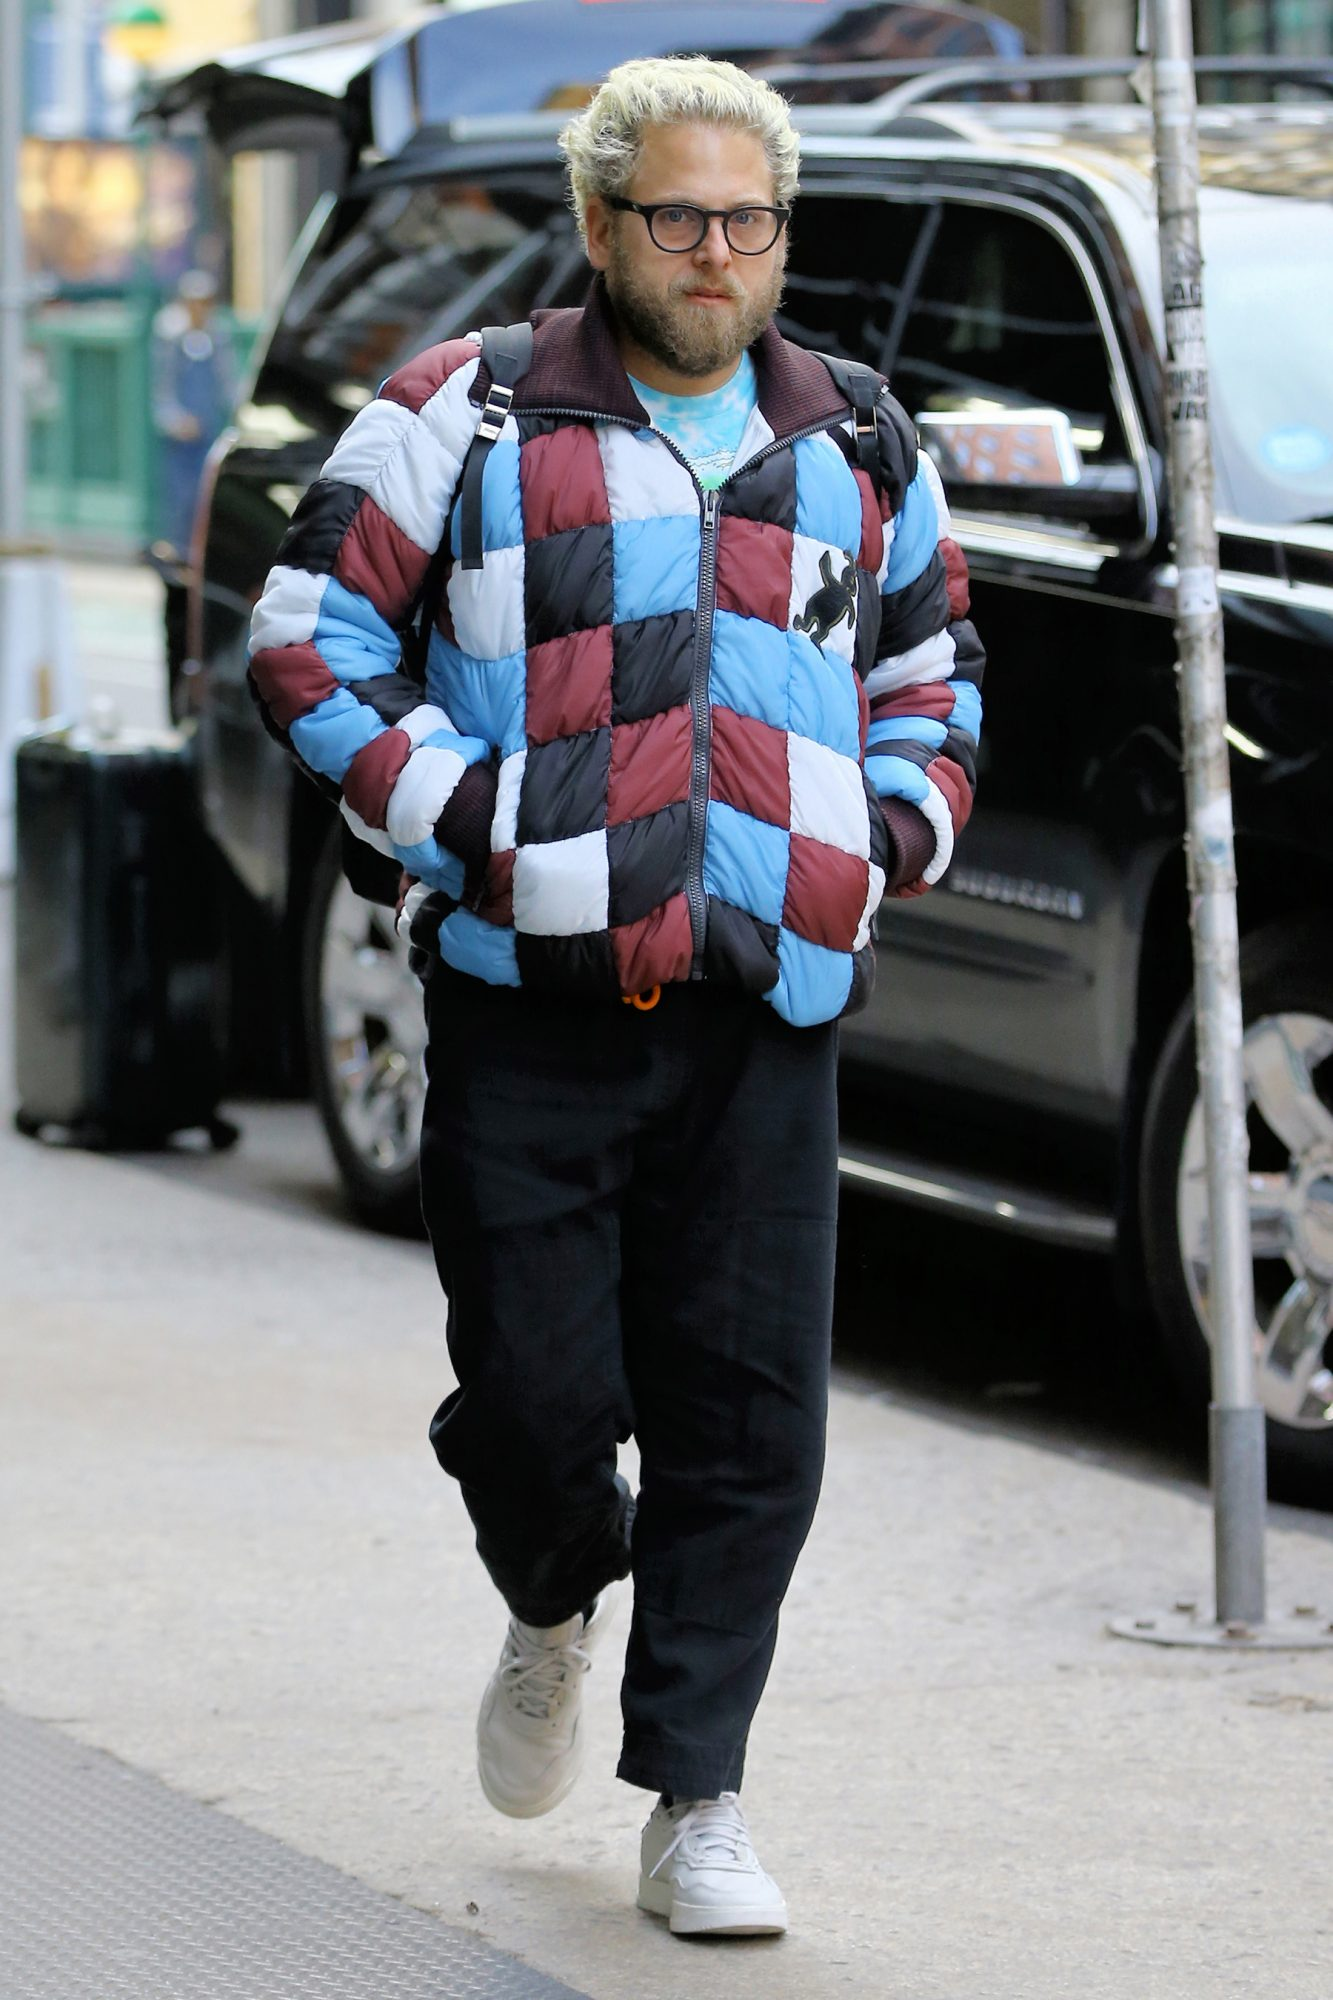 EXCLUSIVE: Blonde-haired style icon and actor Jonah Hill, wearing a colorful patch quilt jacket, arrives home in Soho in New York City on January 28, 2019.